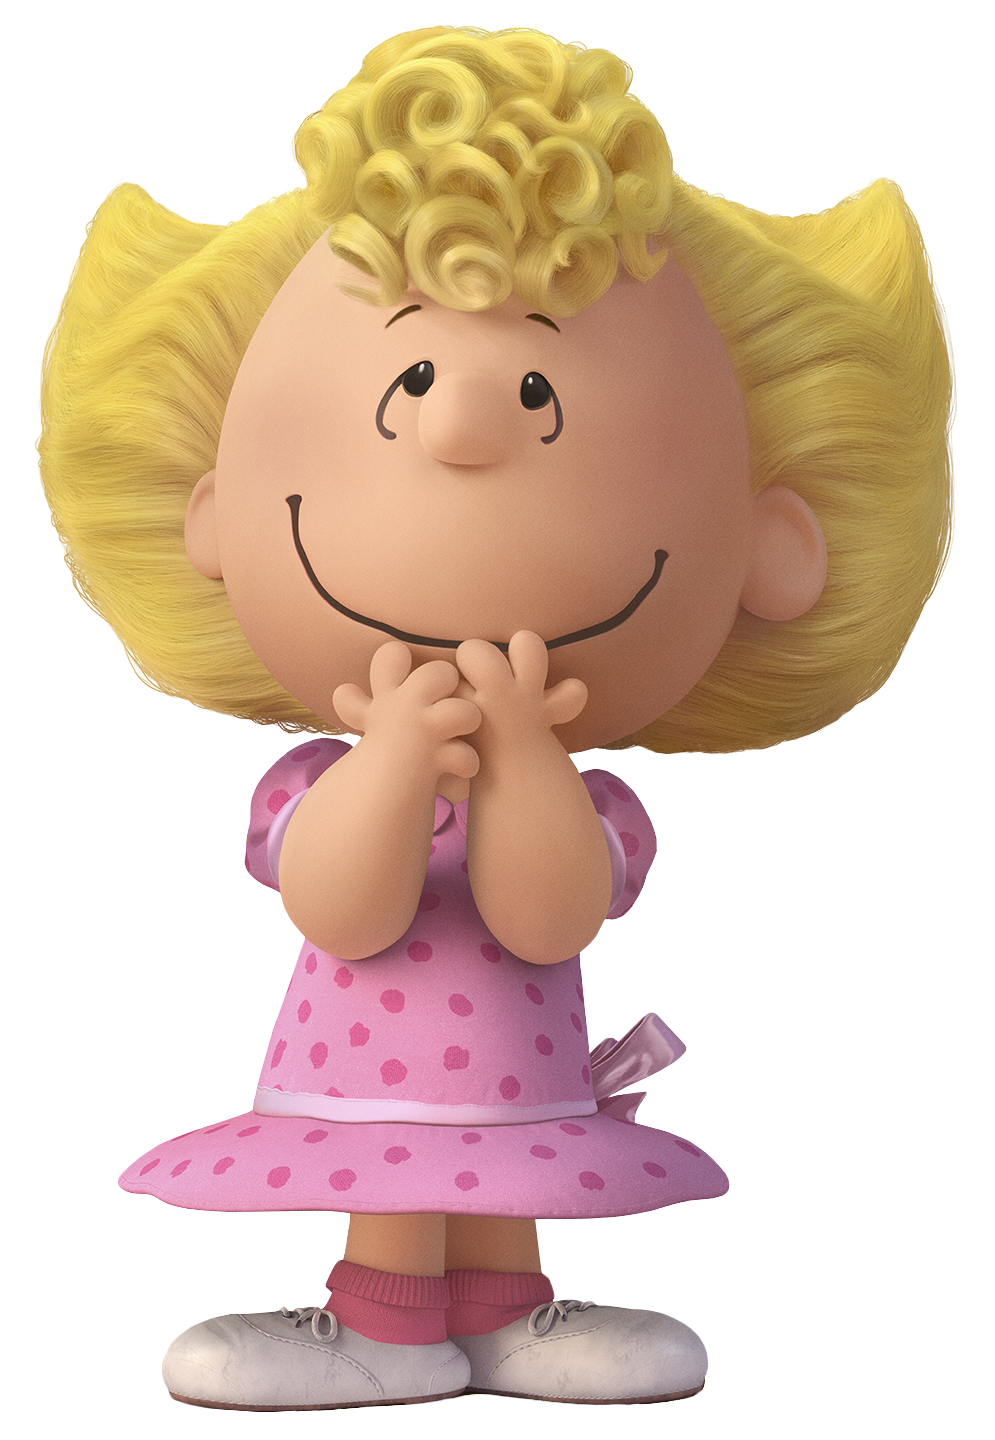 Peanuts clipart sally. The movie transparent cartoon